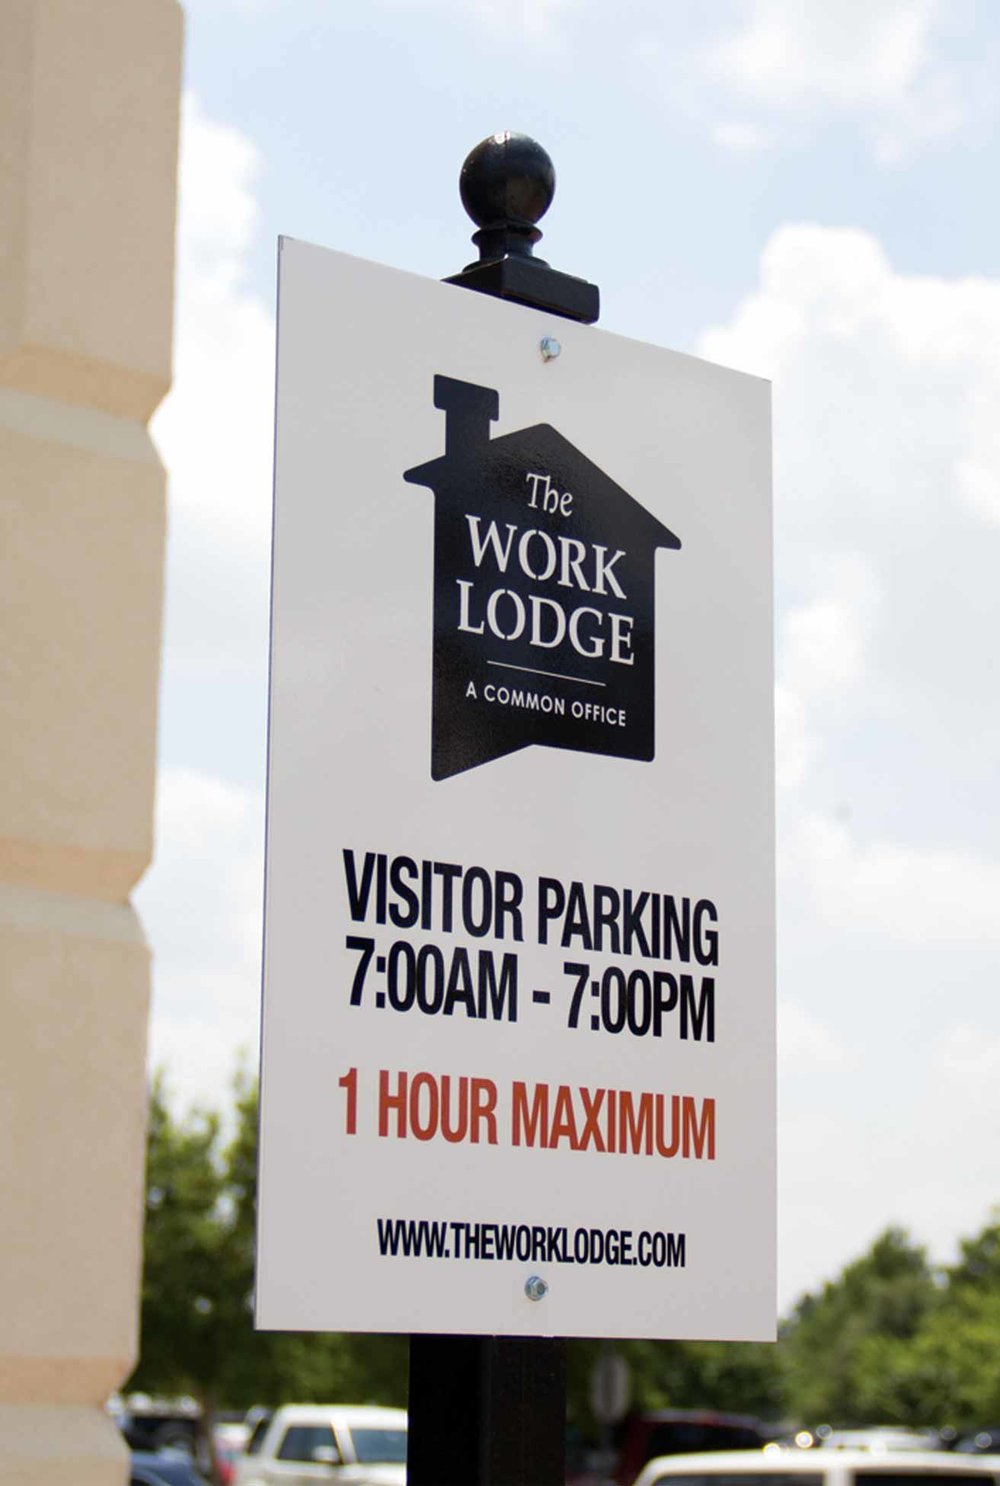 theworklodge-vert_parking-sign.jpg